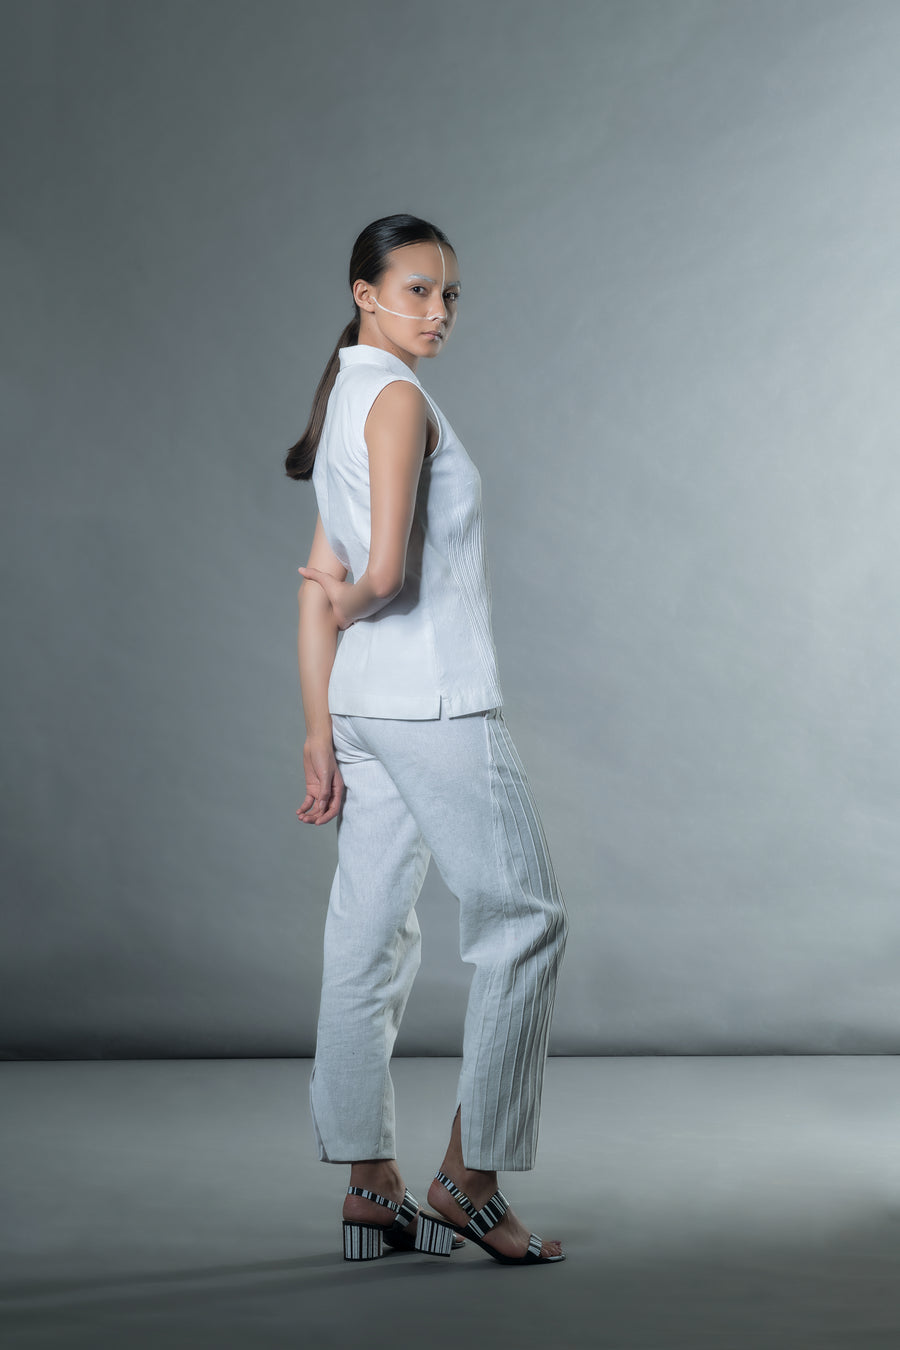 Khadi White Shirt - Ethical made fashion - onlyethikal